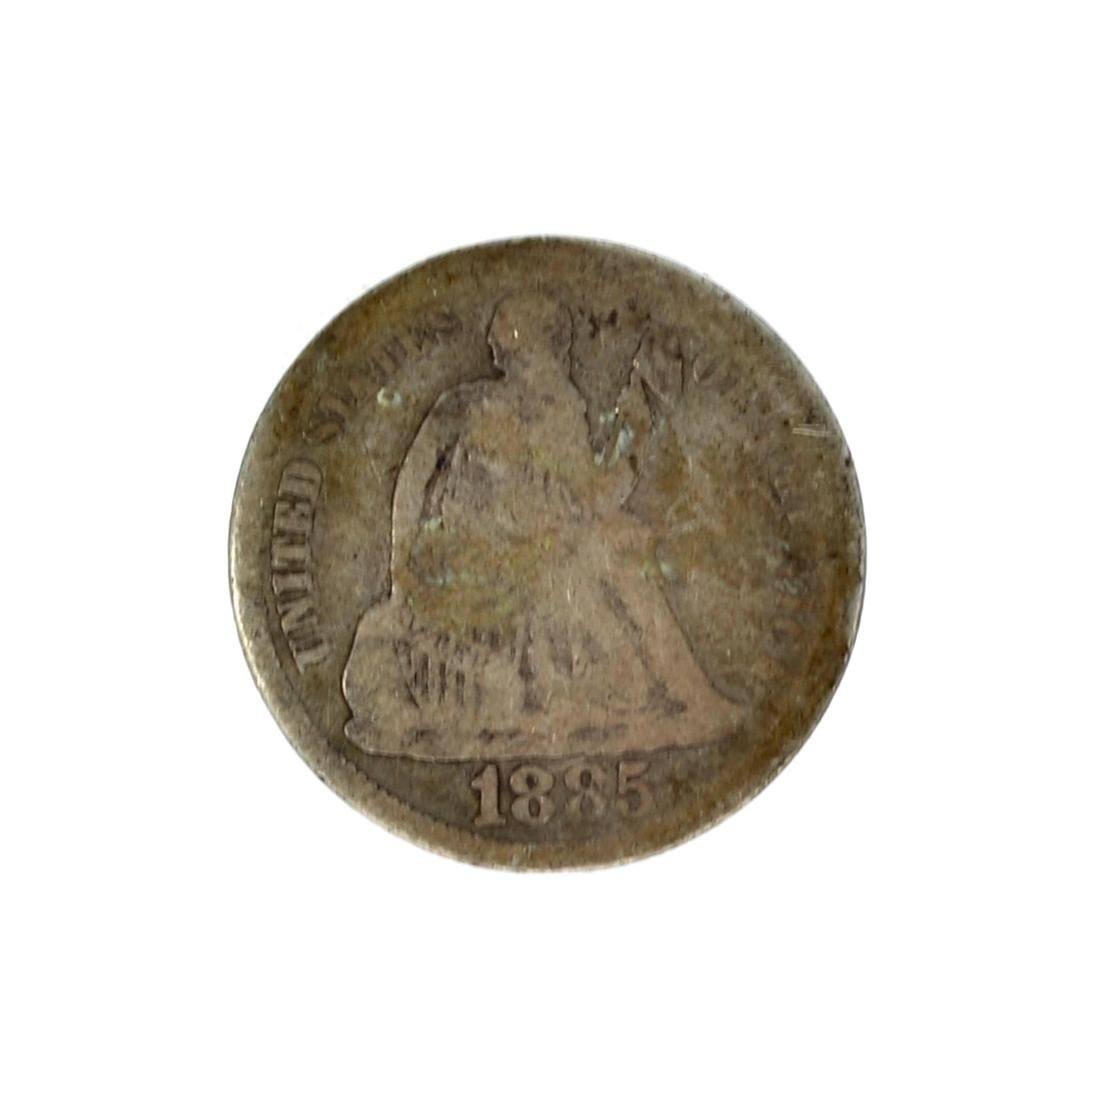 1885 Liberty Seated Dime Coin